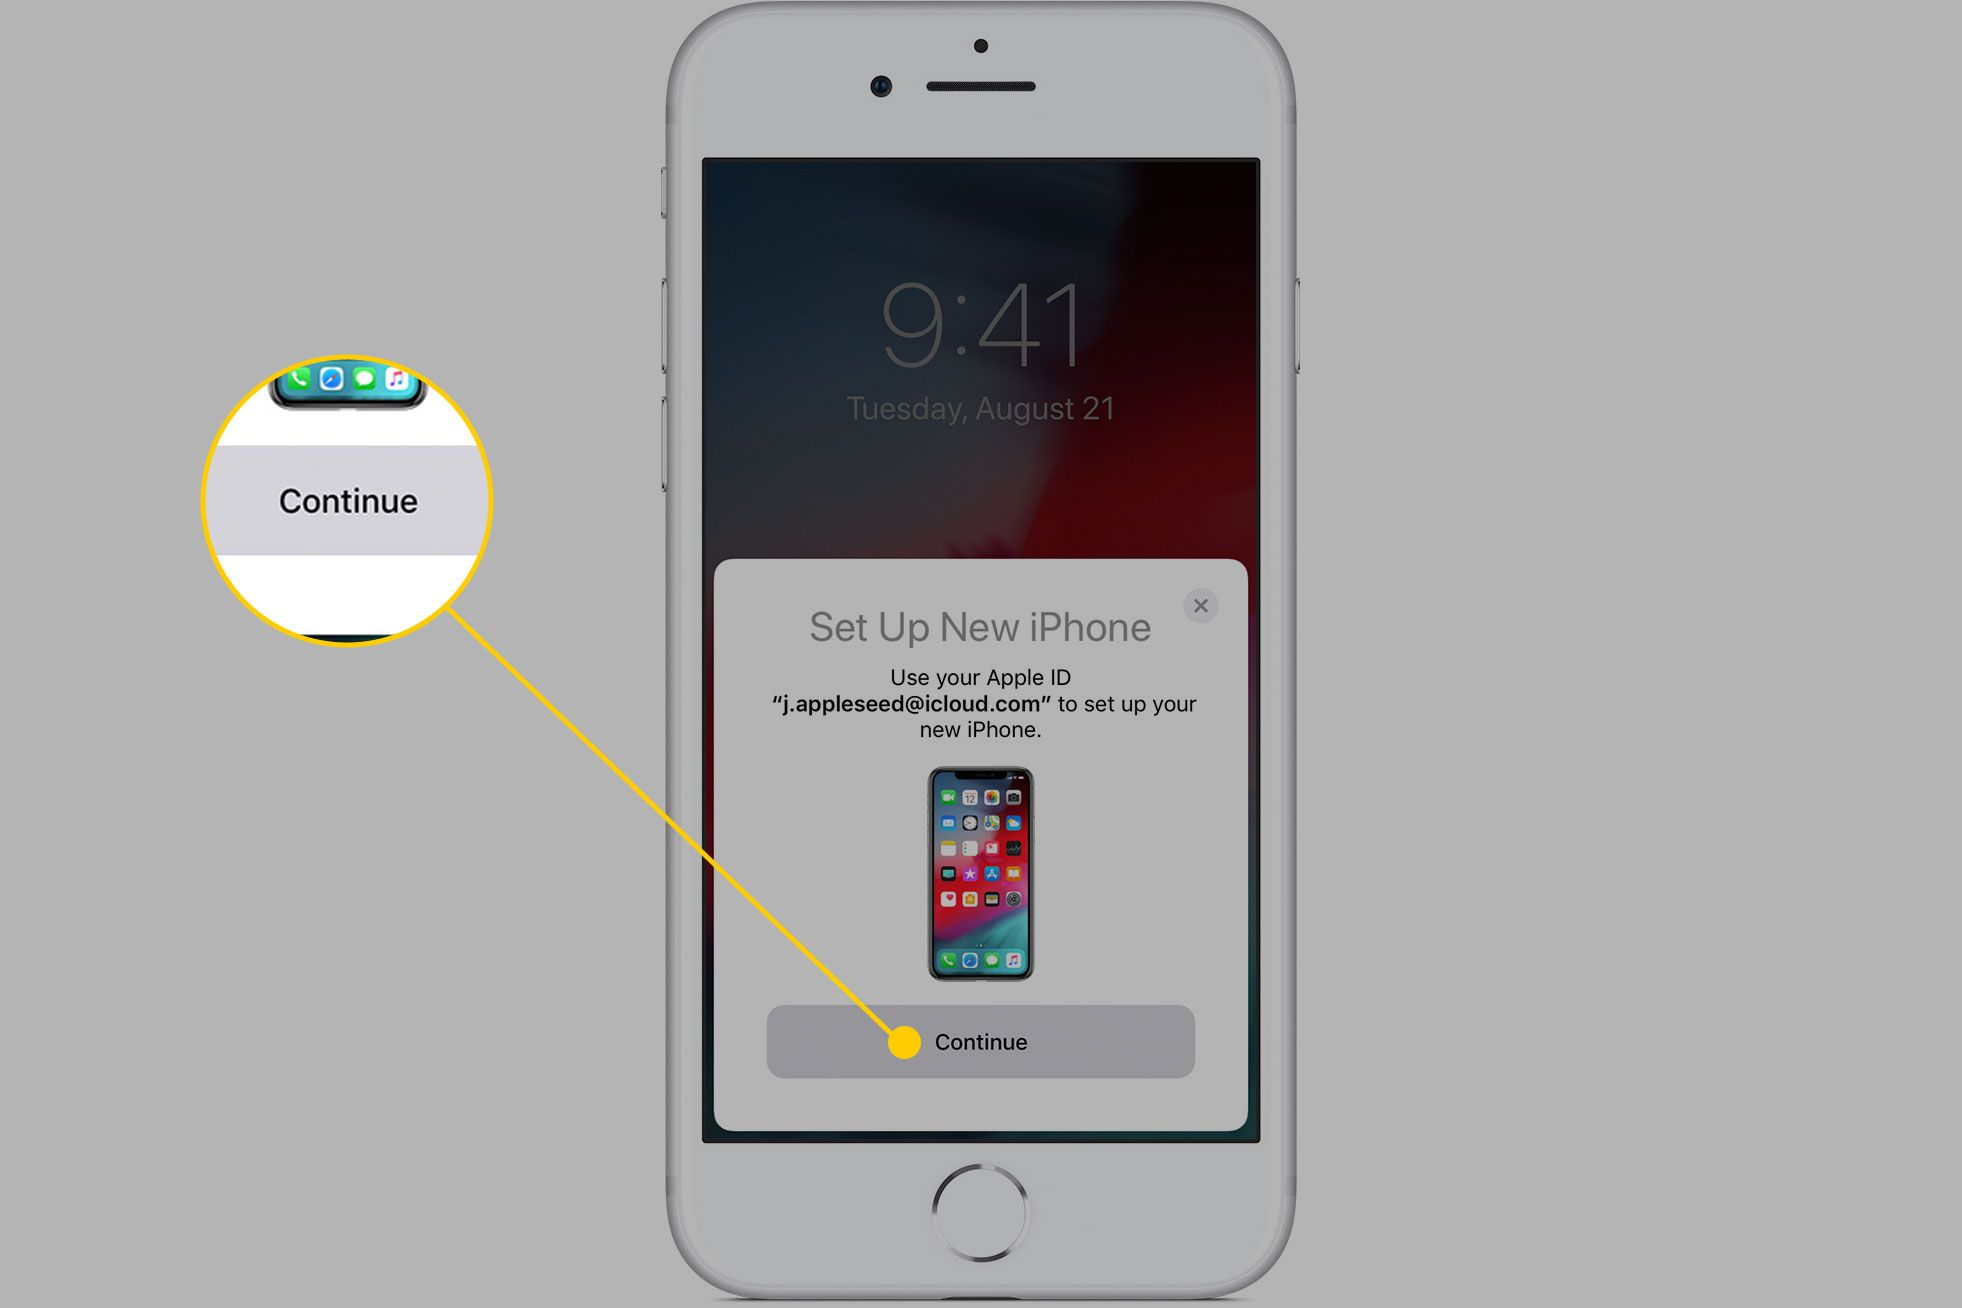 Set Up New iPhone screen with the Continue button highlighted